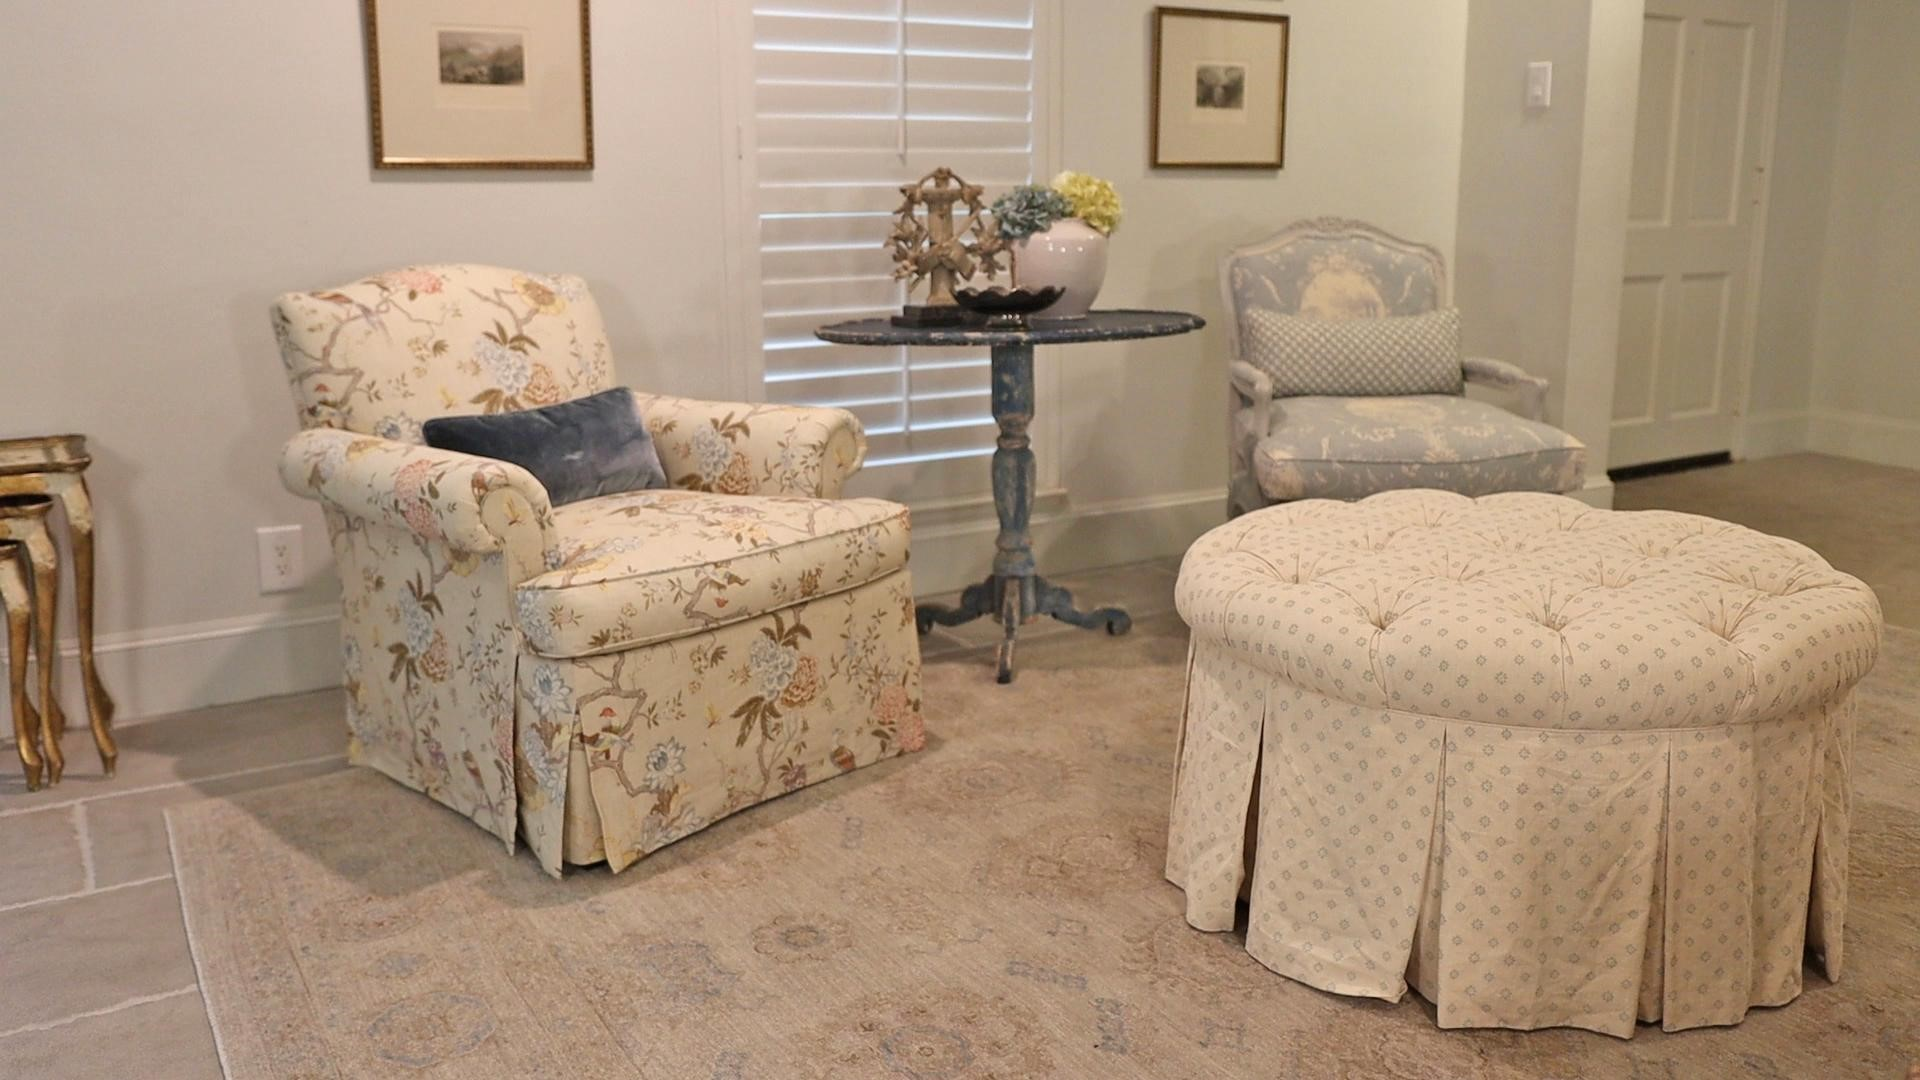 Amitha's living room showing how to mix patterns on her French country furniture to create a space that does not look overwhelming.